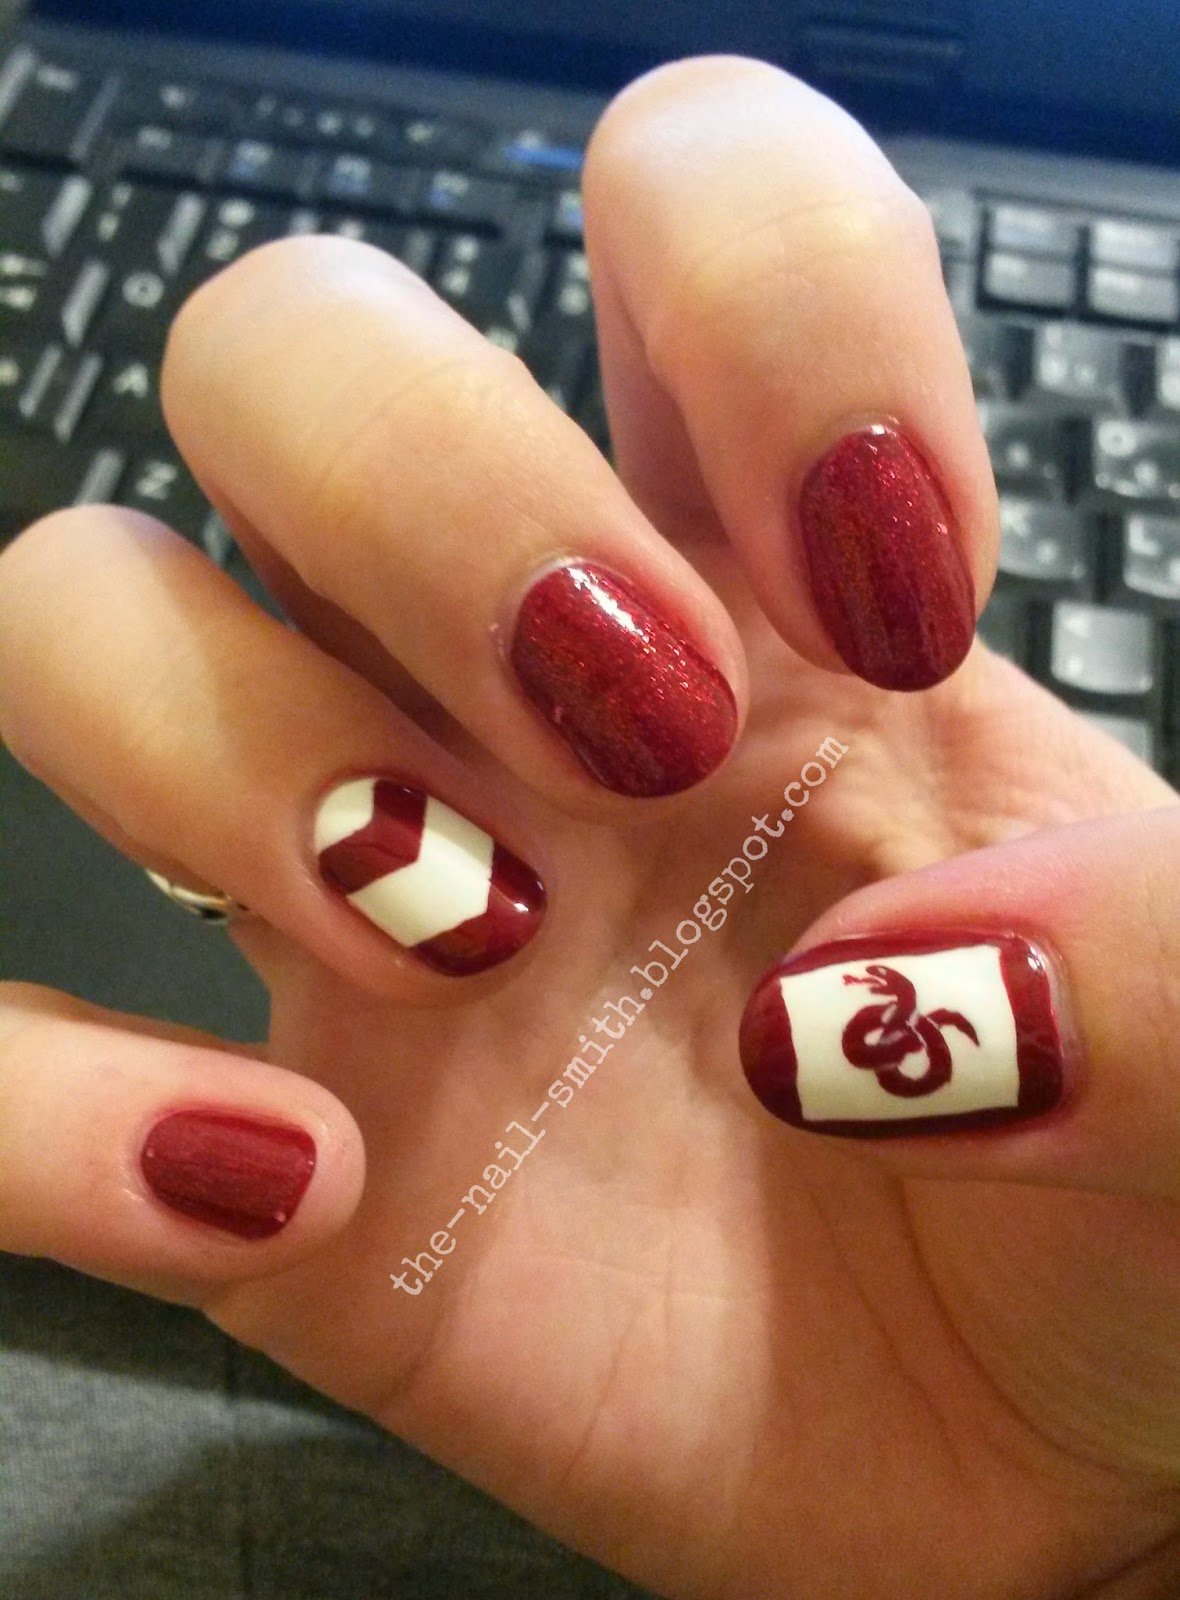 The Nail Smith: I Believe in Theta Chi